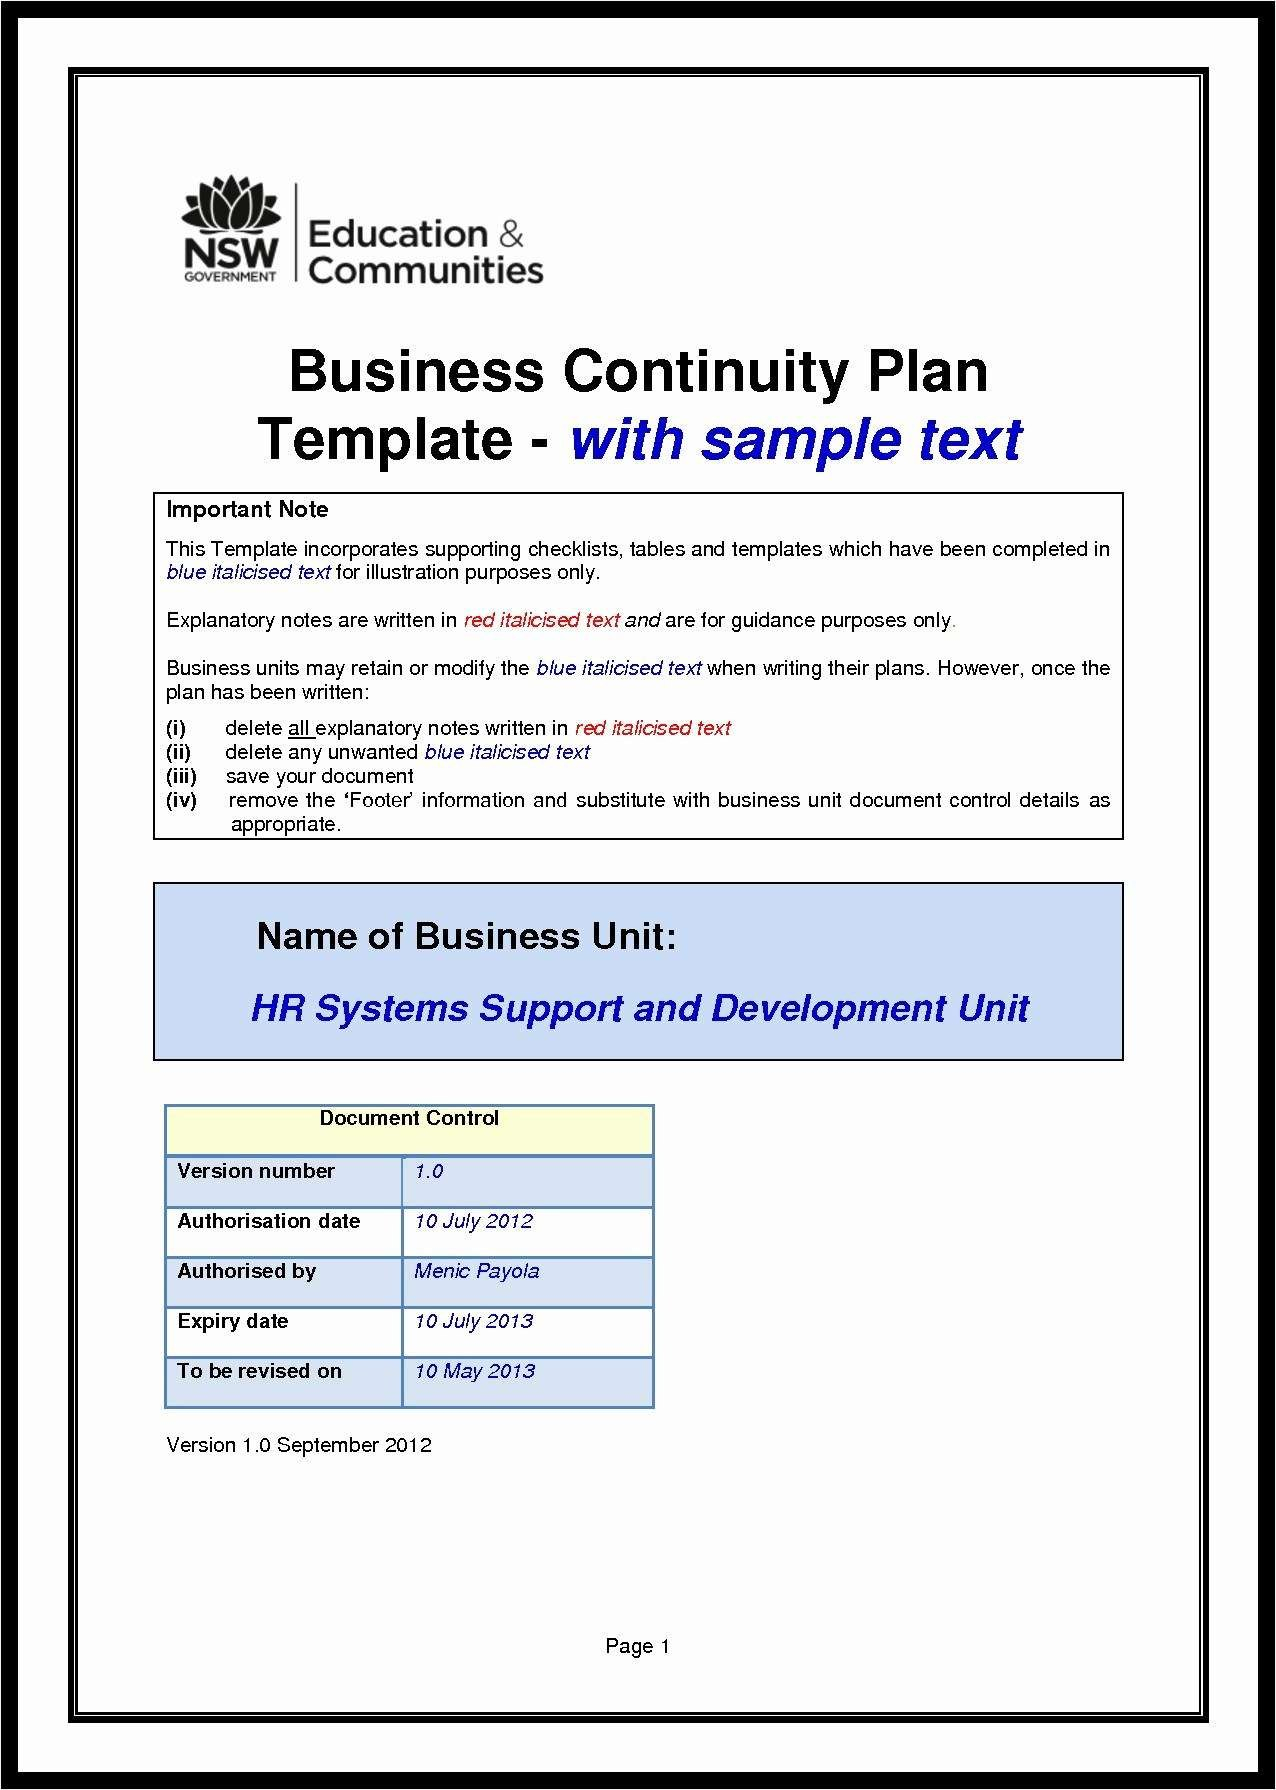 Business Continuity Management Policy Template  Caquetapositivo Throughout Business Continuity Management Policy Template